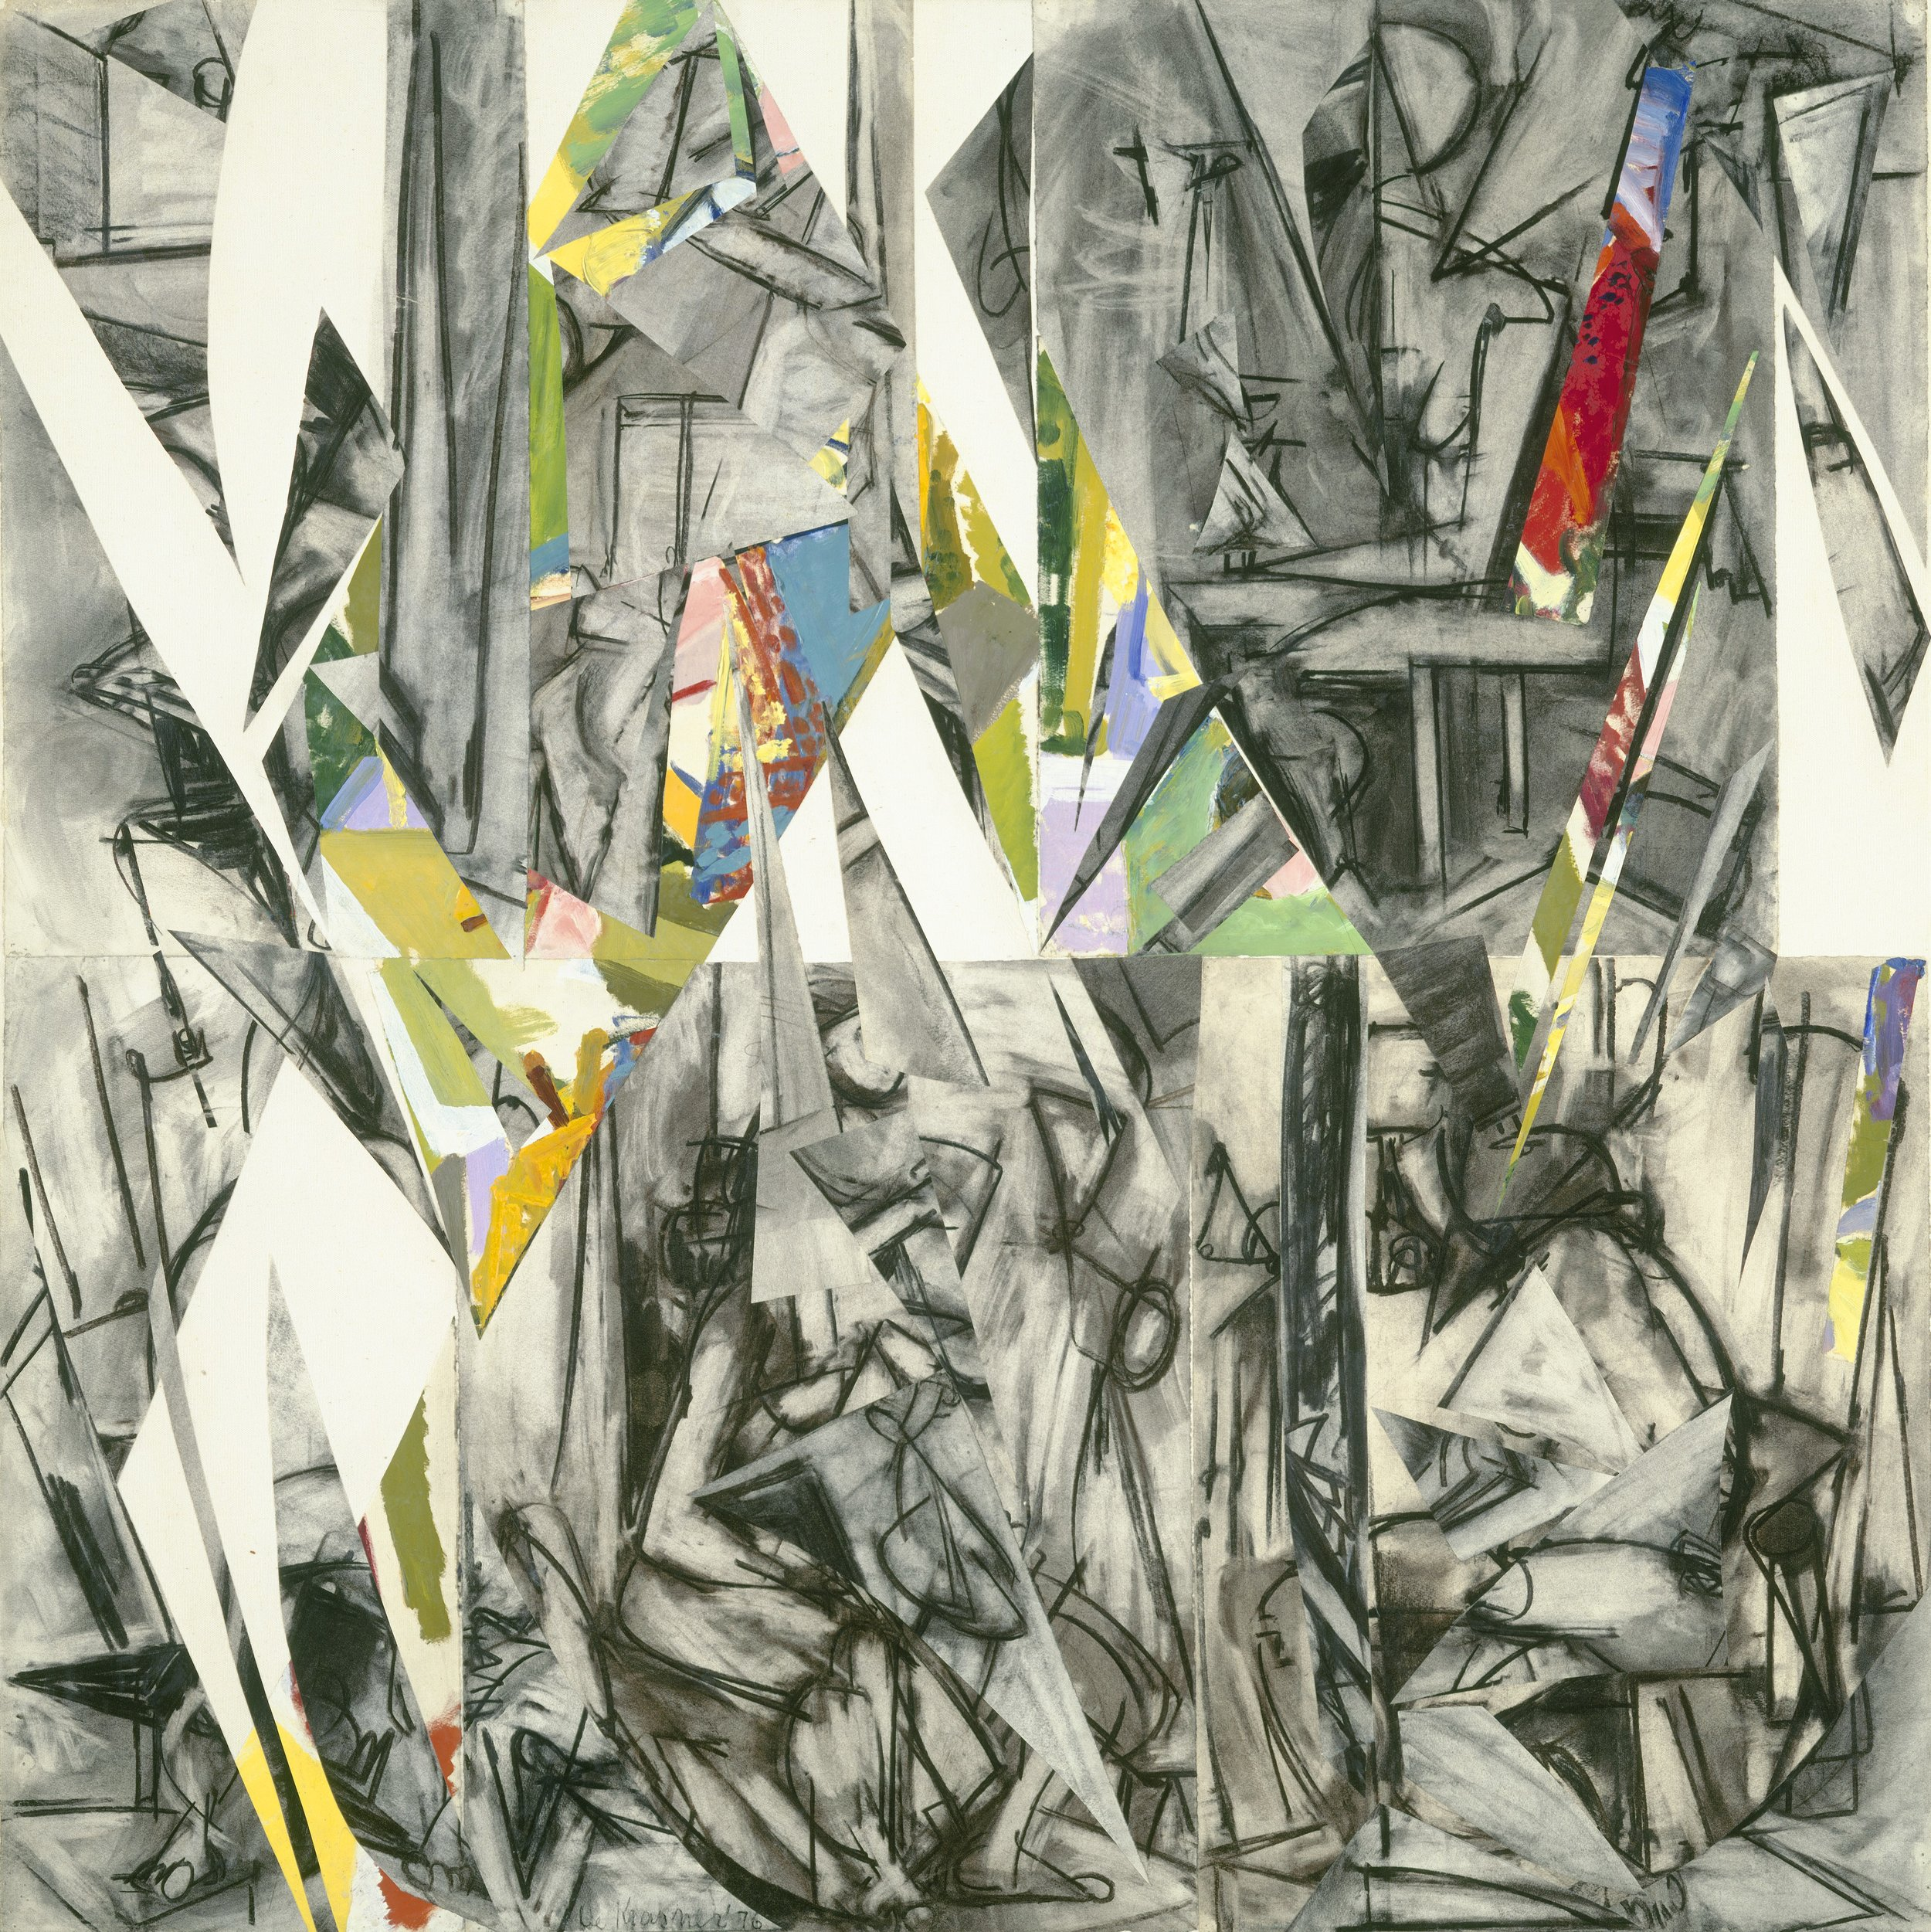 Lee Krasner, Imperative, 1976, National Gallery of Art, Washington D.C. © The Pollock-Krasner Foundation. Courtesy National Gallery of Art, Washington D.C.